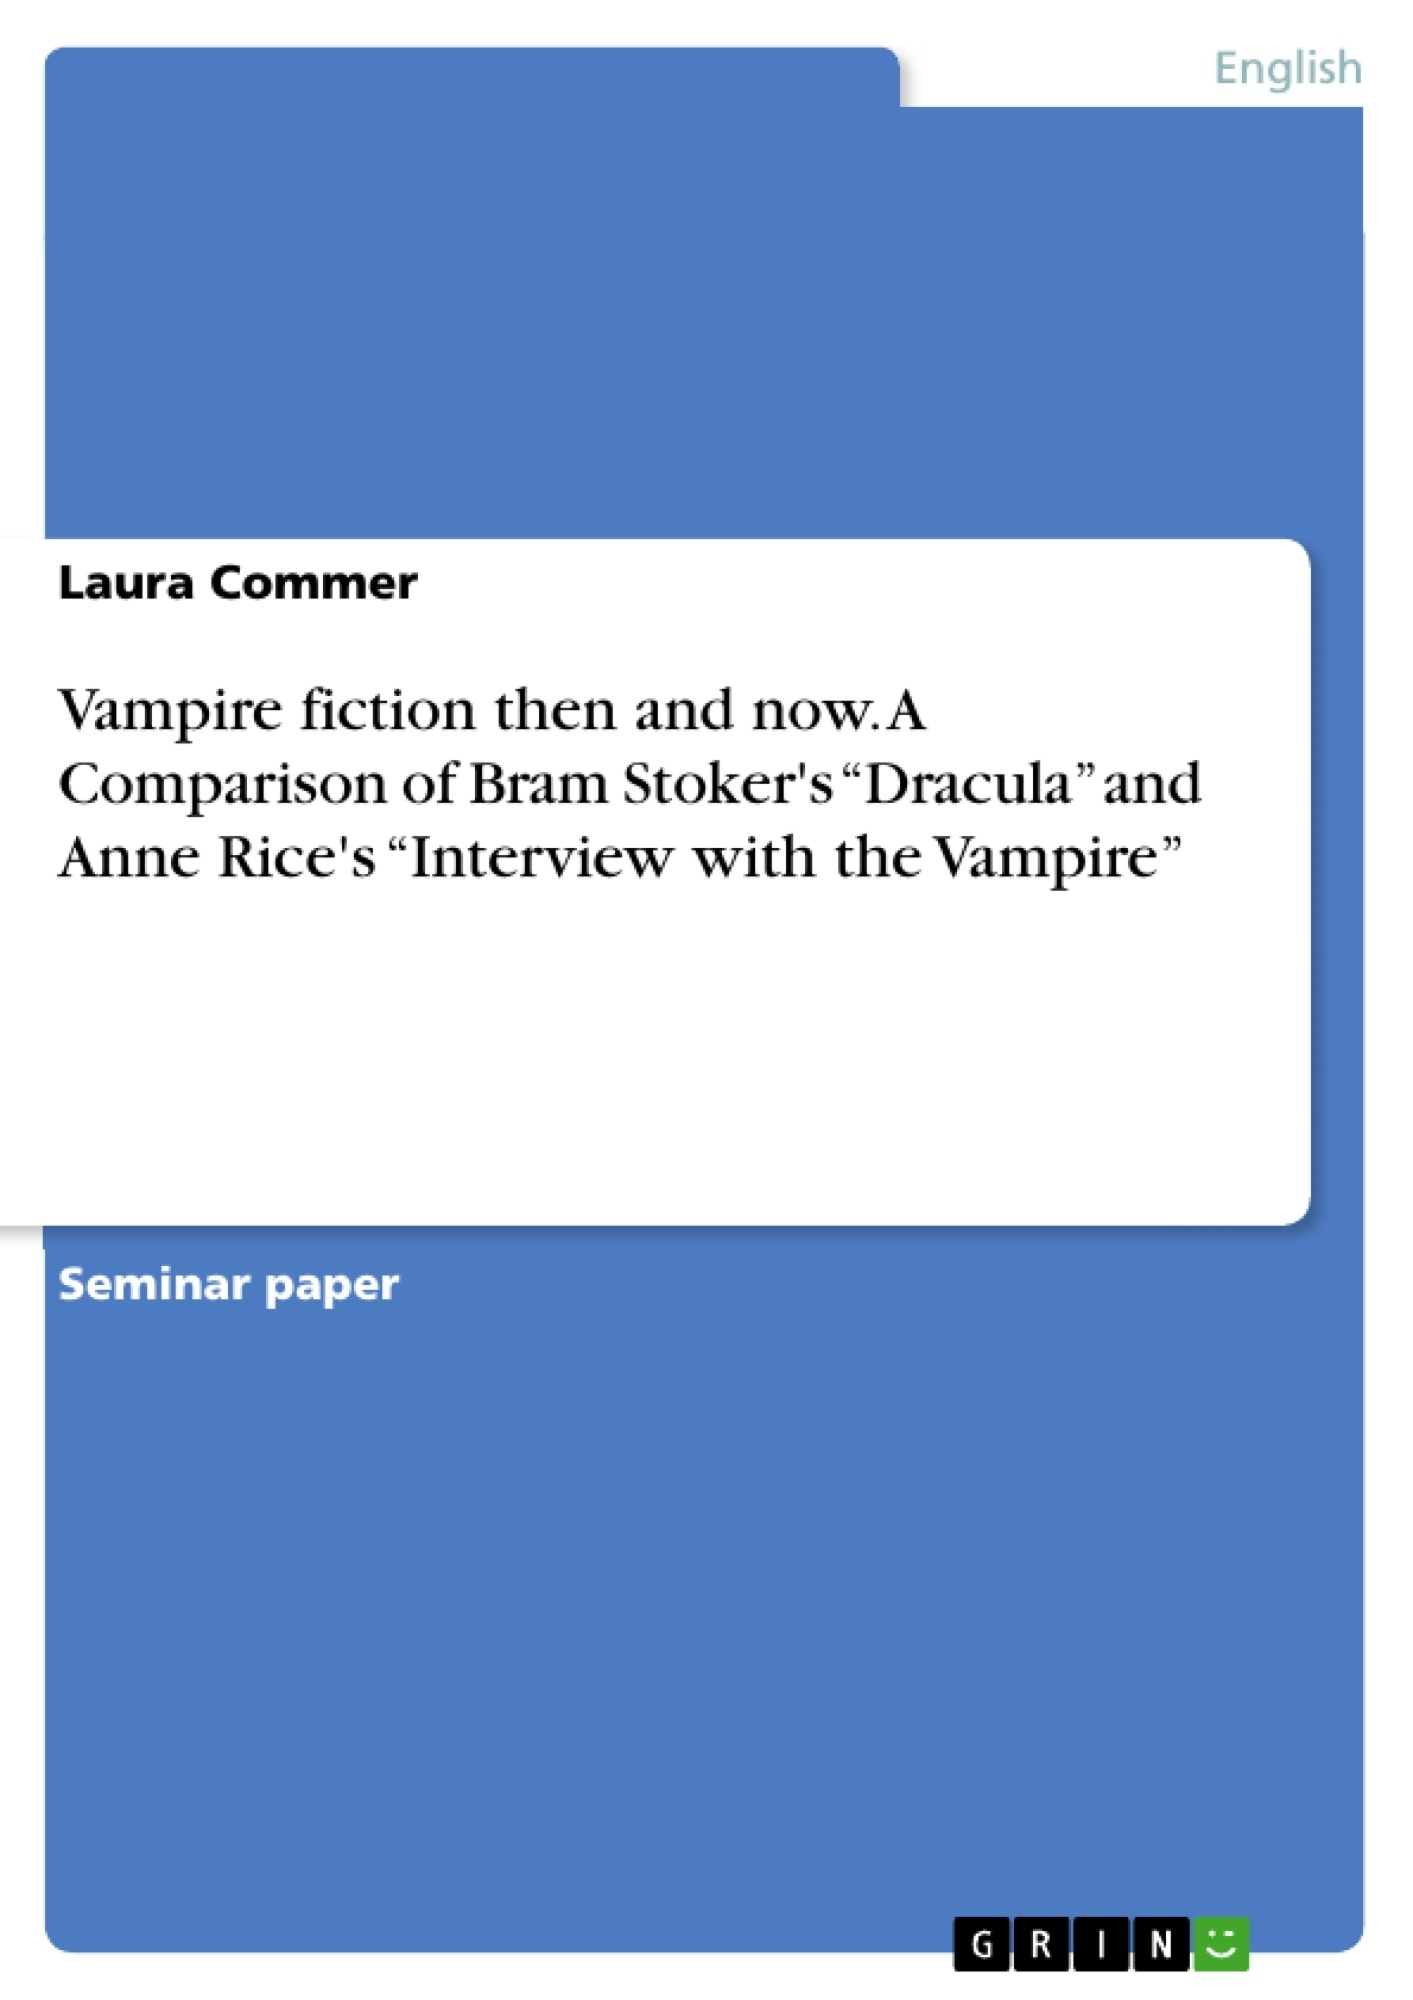 term paper on dracula A paper which looks at 'dracula' from the perspective of bram stoker's cultural and ethnic background, and in particular the interaction between traditional views of.